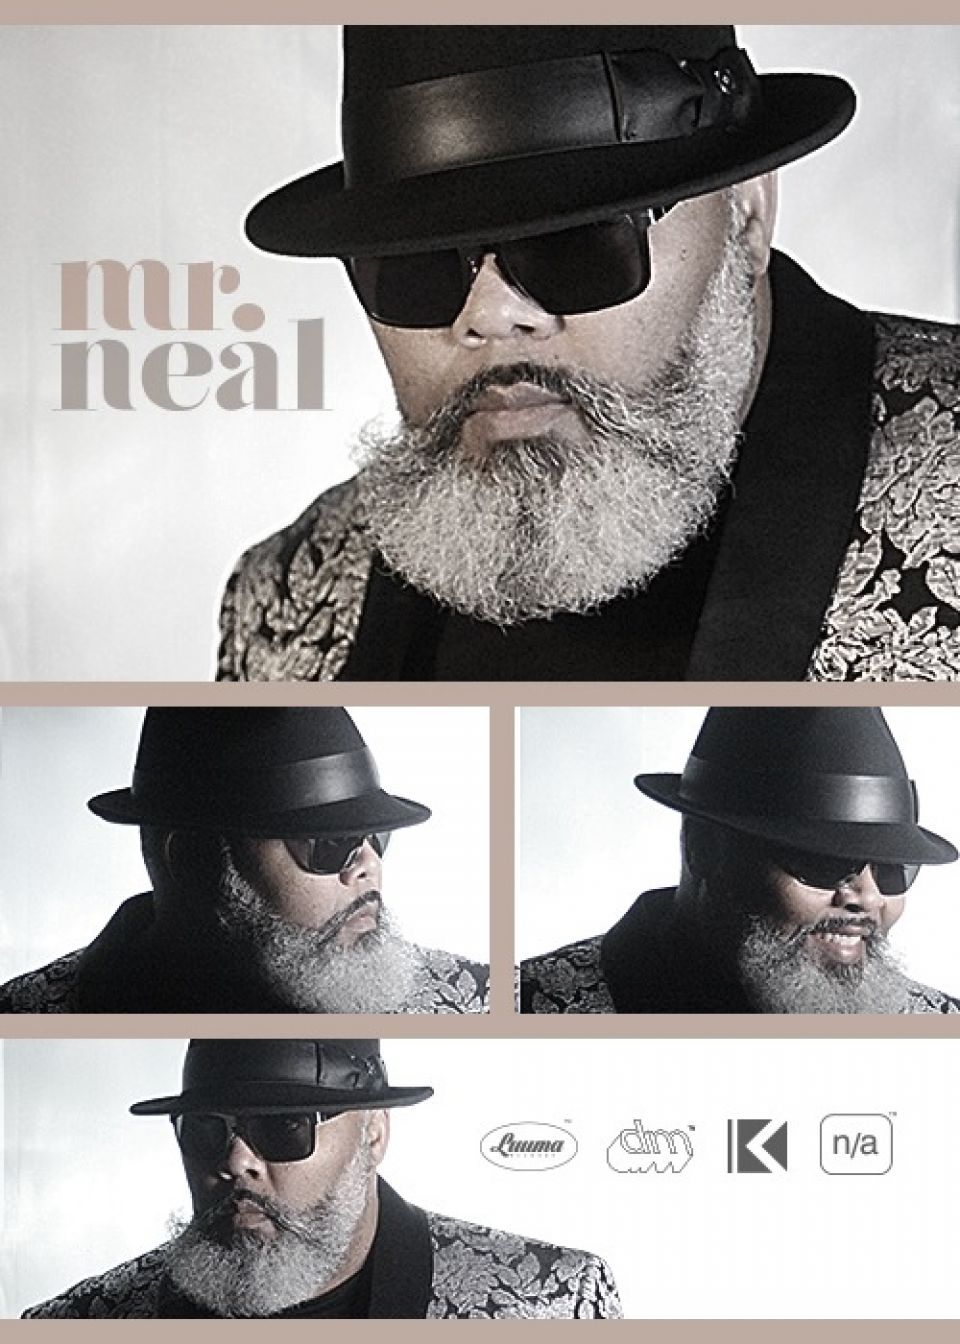 Mr. Neal by Step 2 Calvary